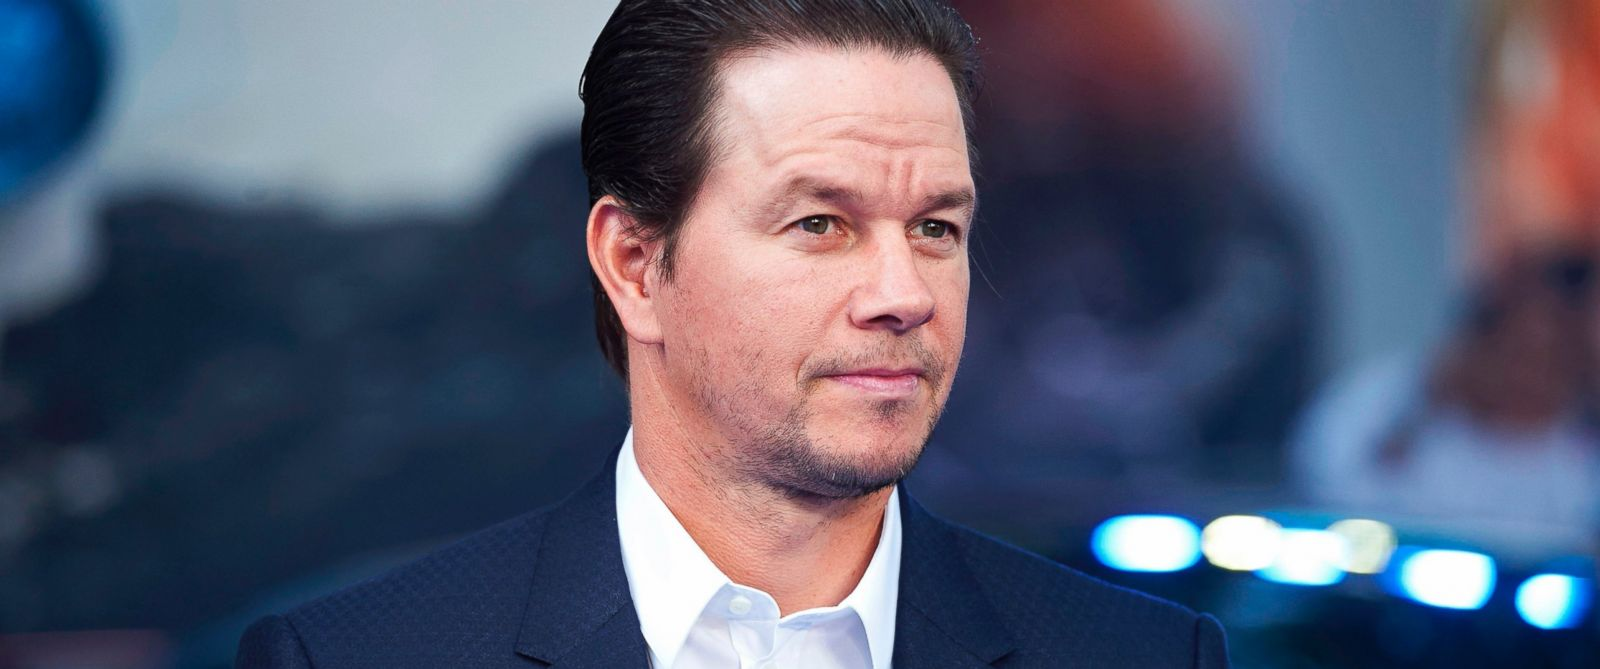 PHOTO: Mark Wahlberg poses upon arrival for the global premiere of the film Transformers: The Last Knight in central London, June 18, 2017.